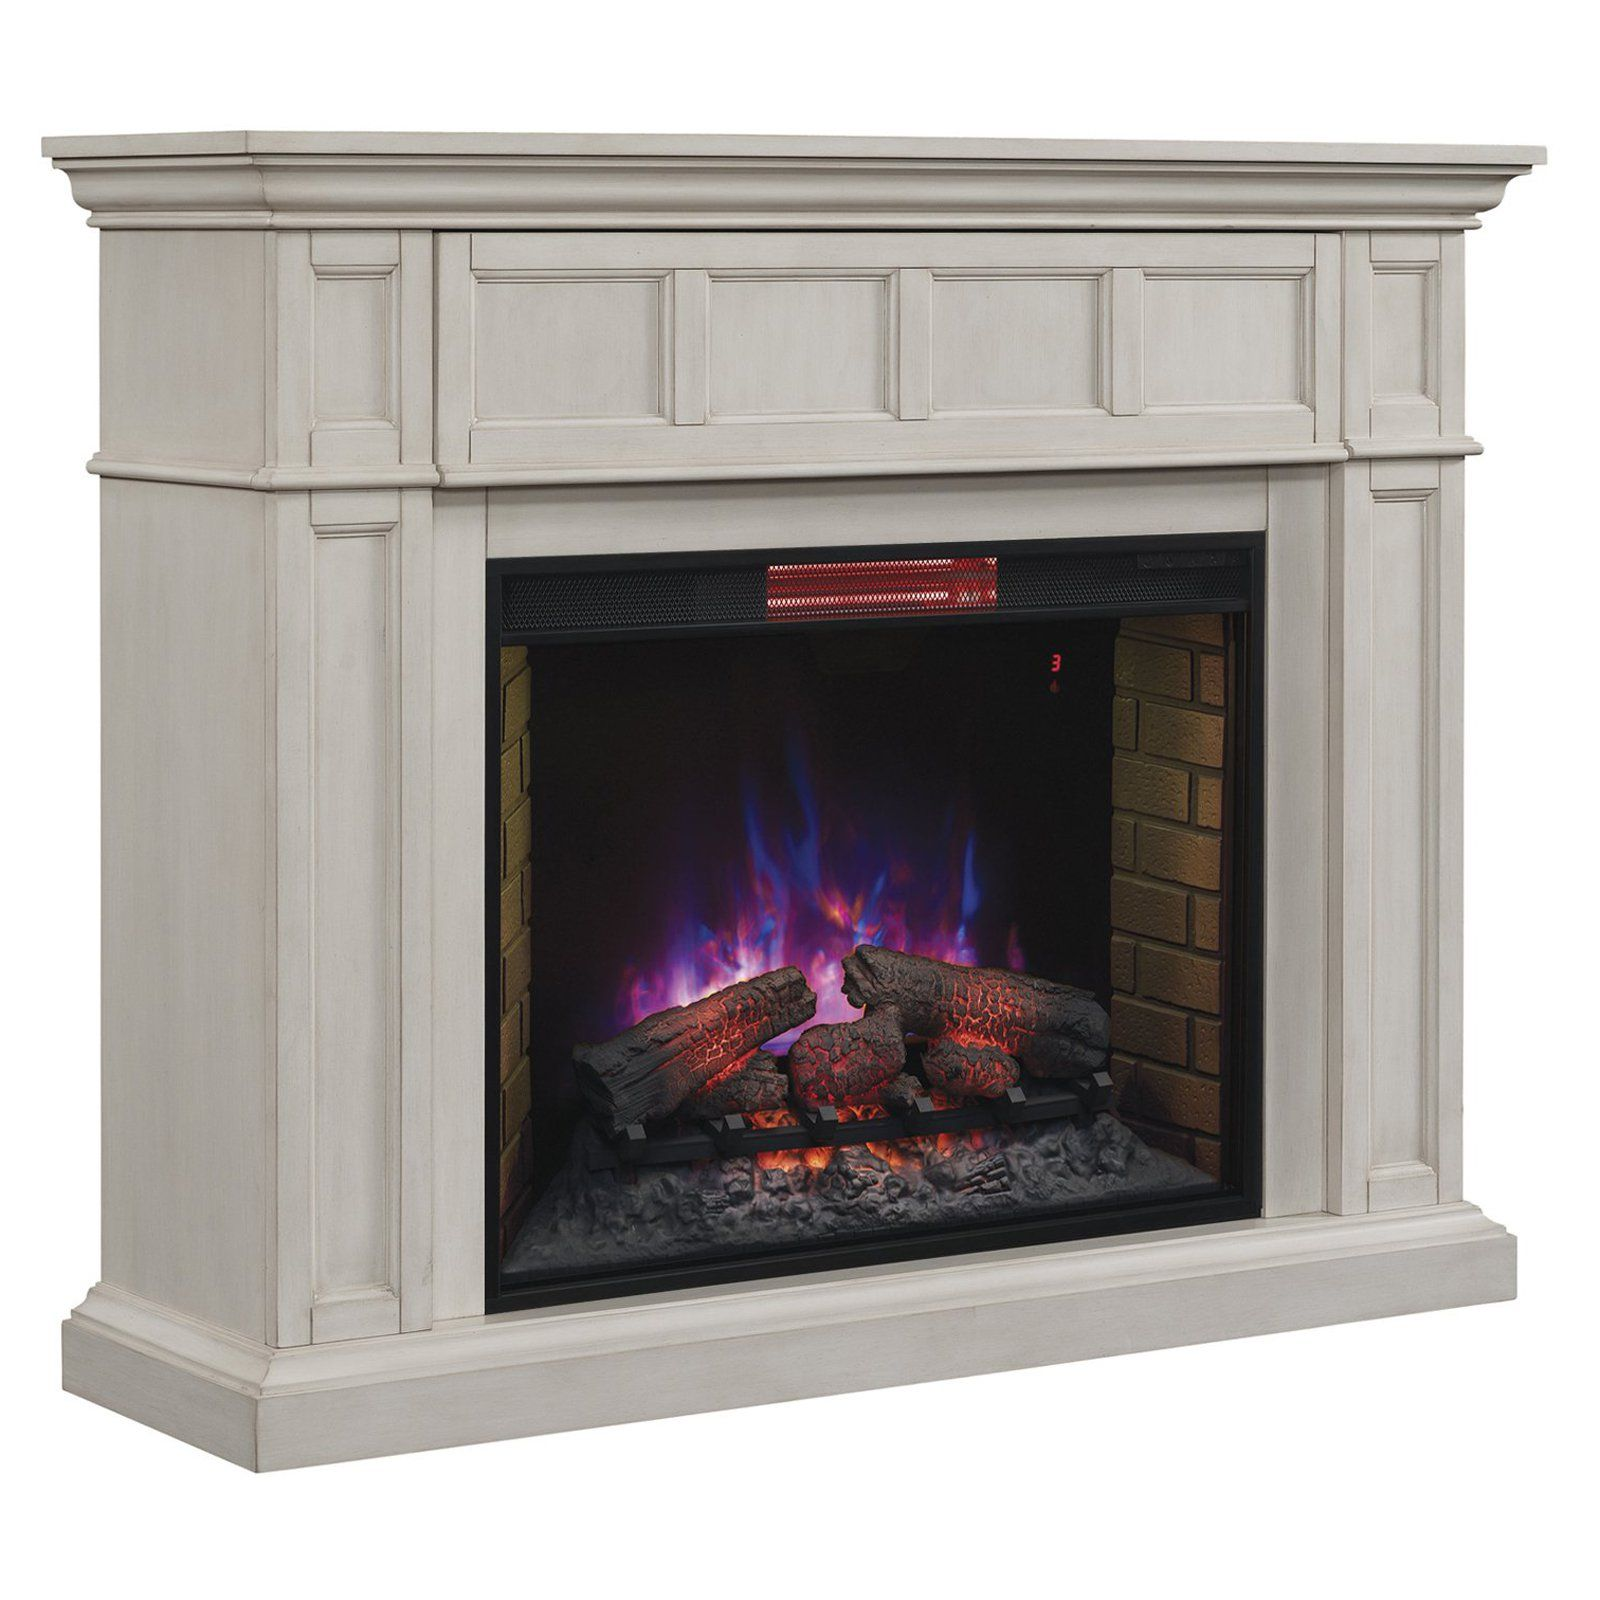 Chimney Free Estate Wall Mantel Electric Fireplace With